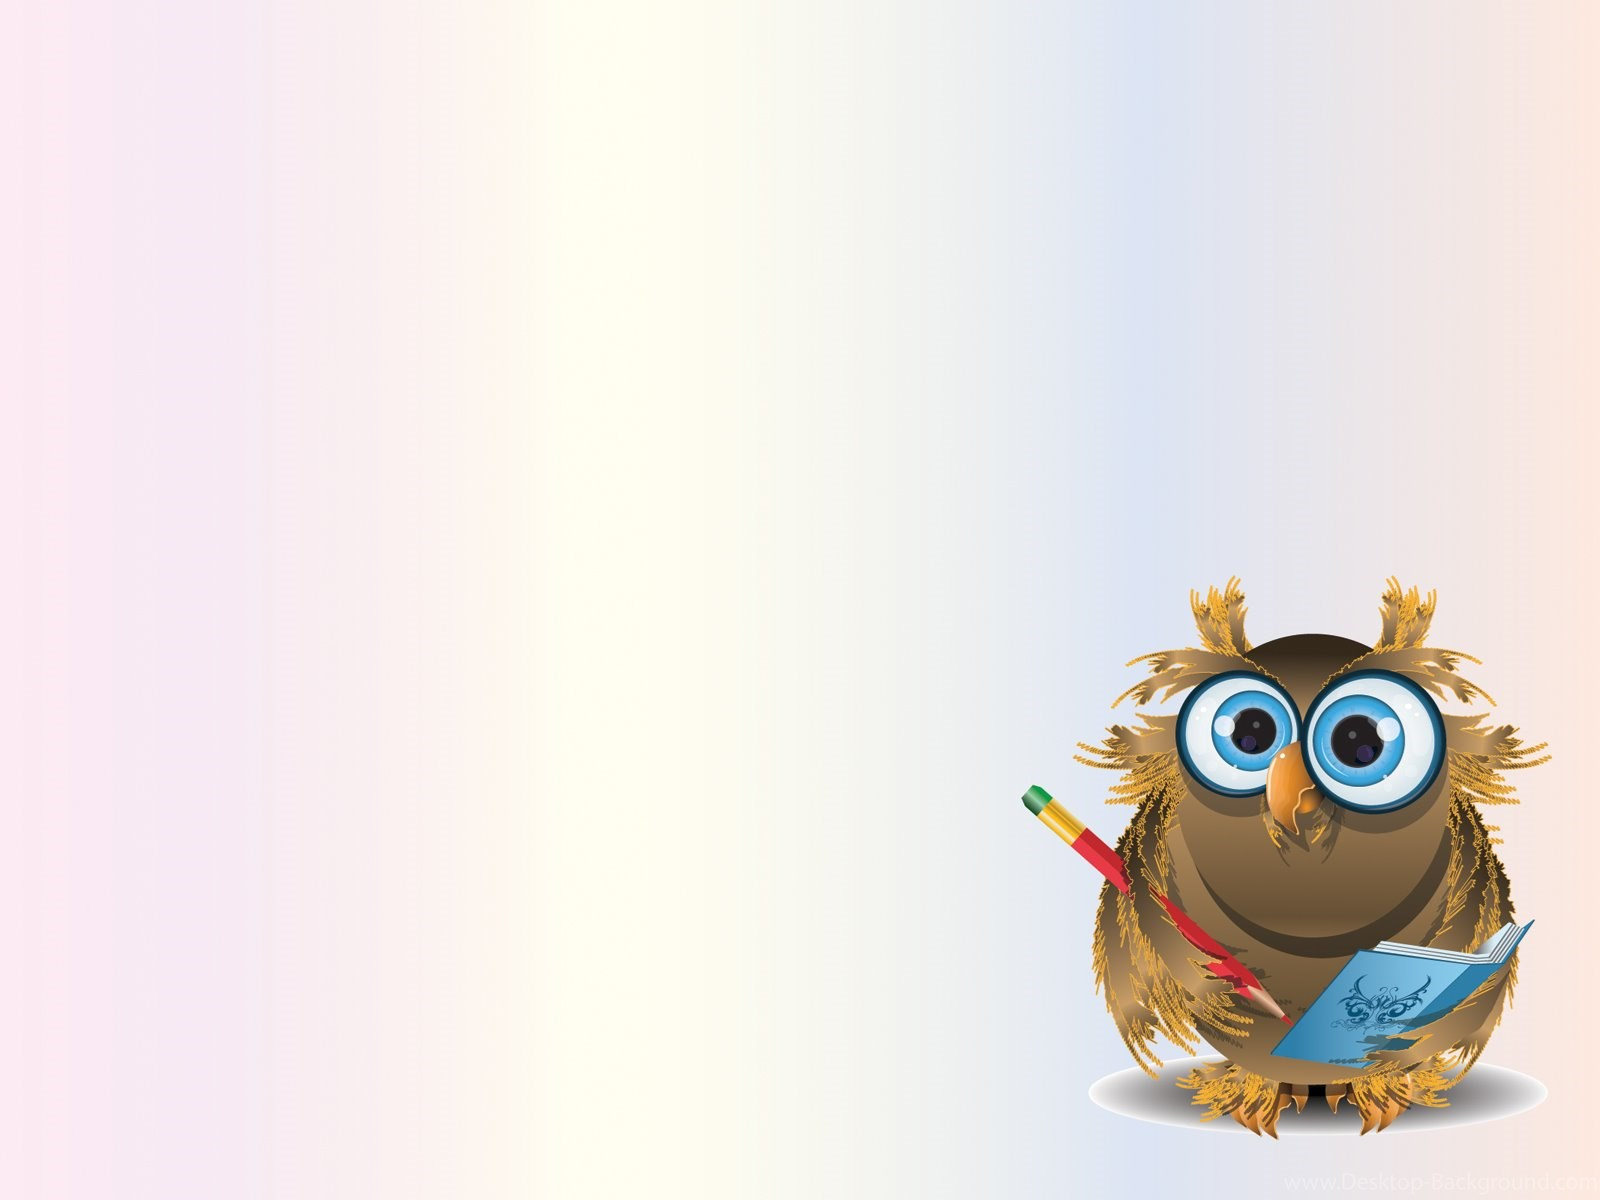 Cute Wallpapers For Desktop 3d Ppt Background Images Hd